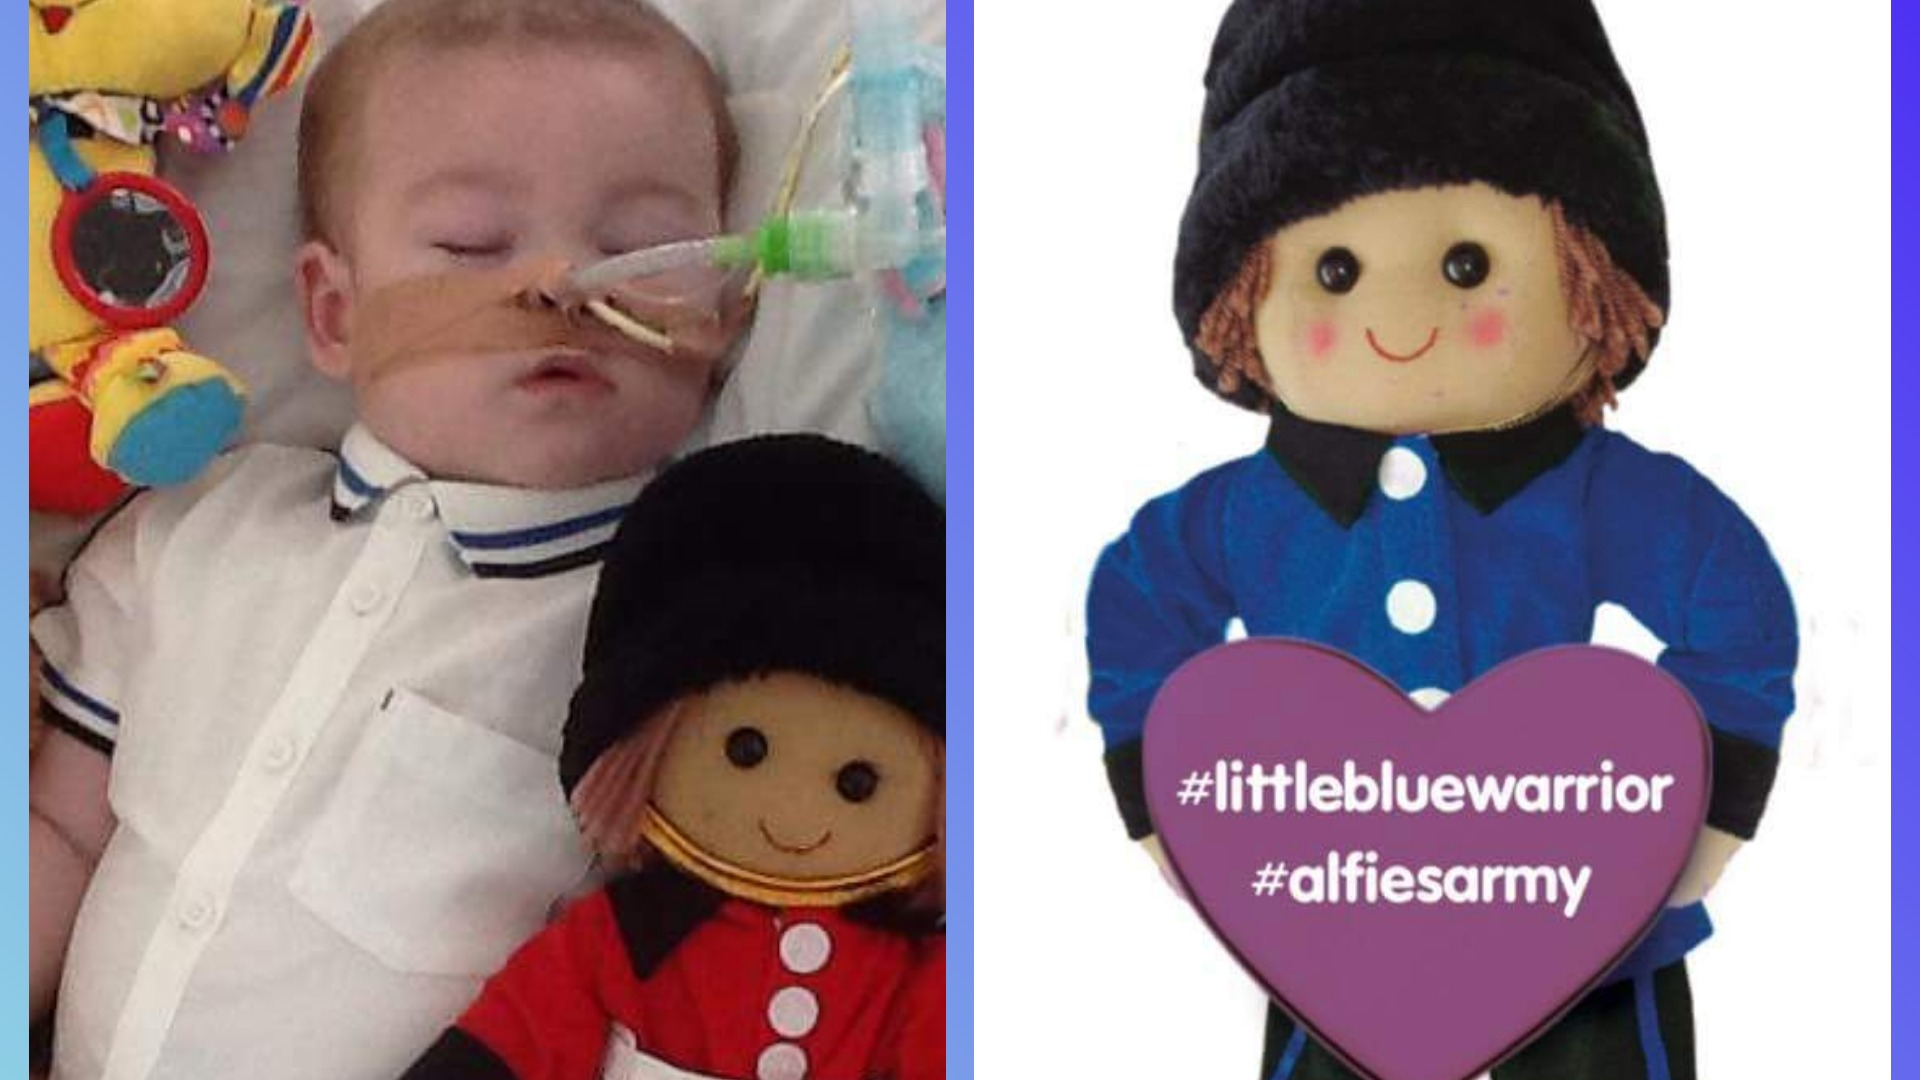 Crowdfunding To Get Alfie Evans A Diagnosis And Treatment Alfiesarmy Littlebluewarrior Alfieswar Alfiesfight On Justgiving